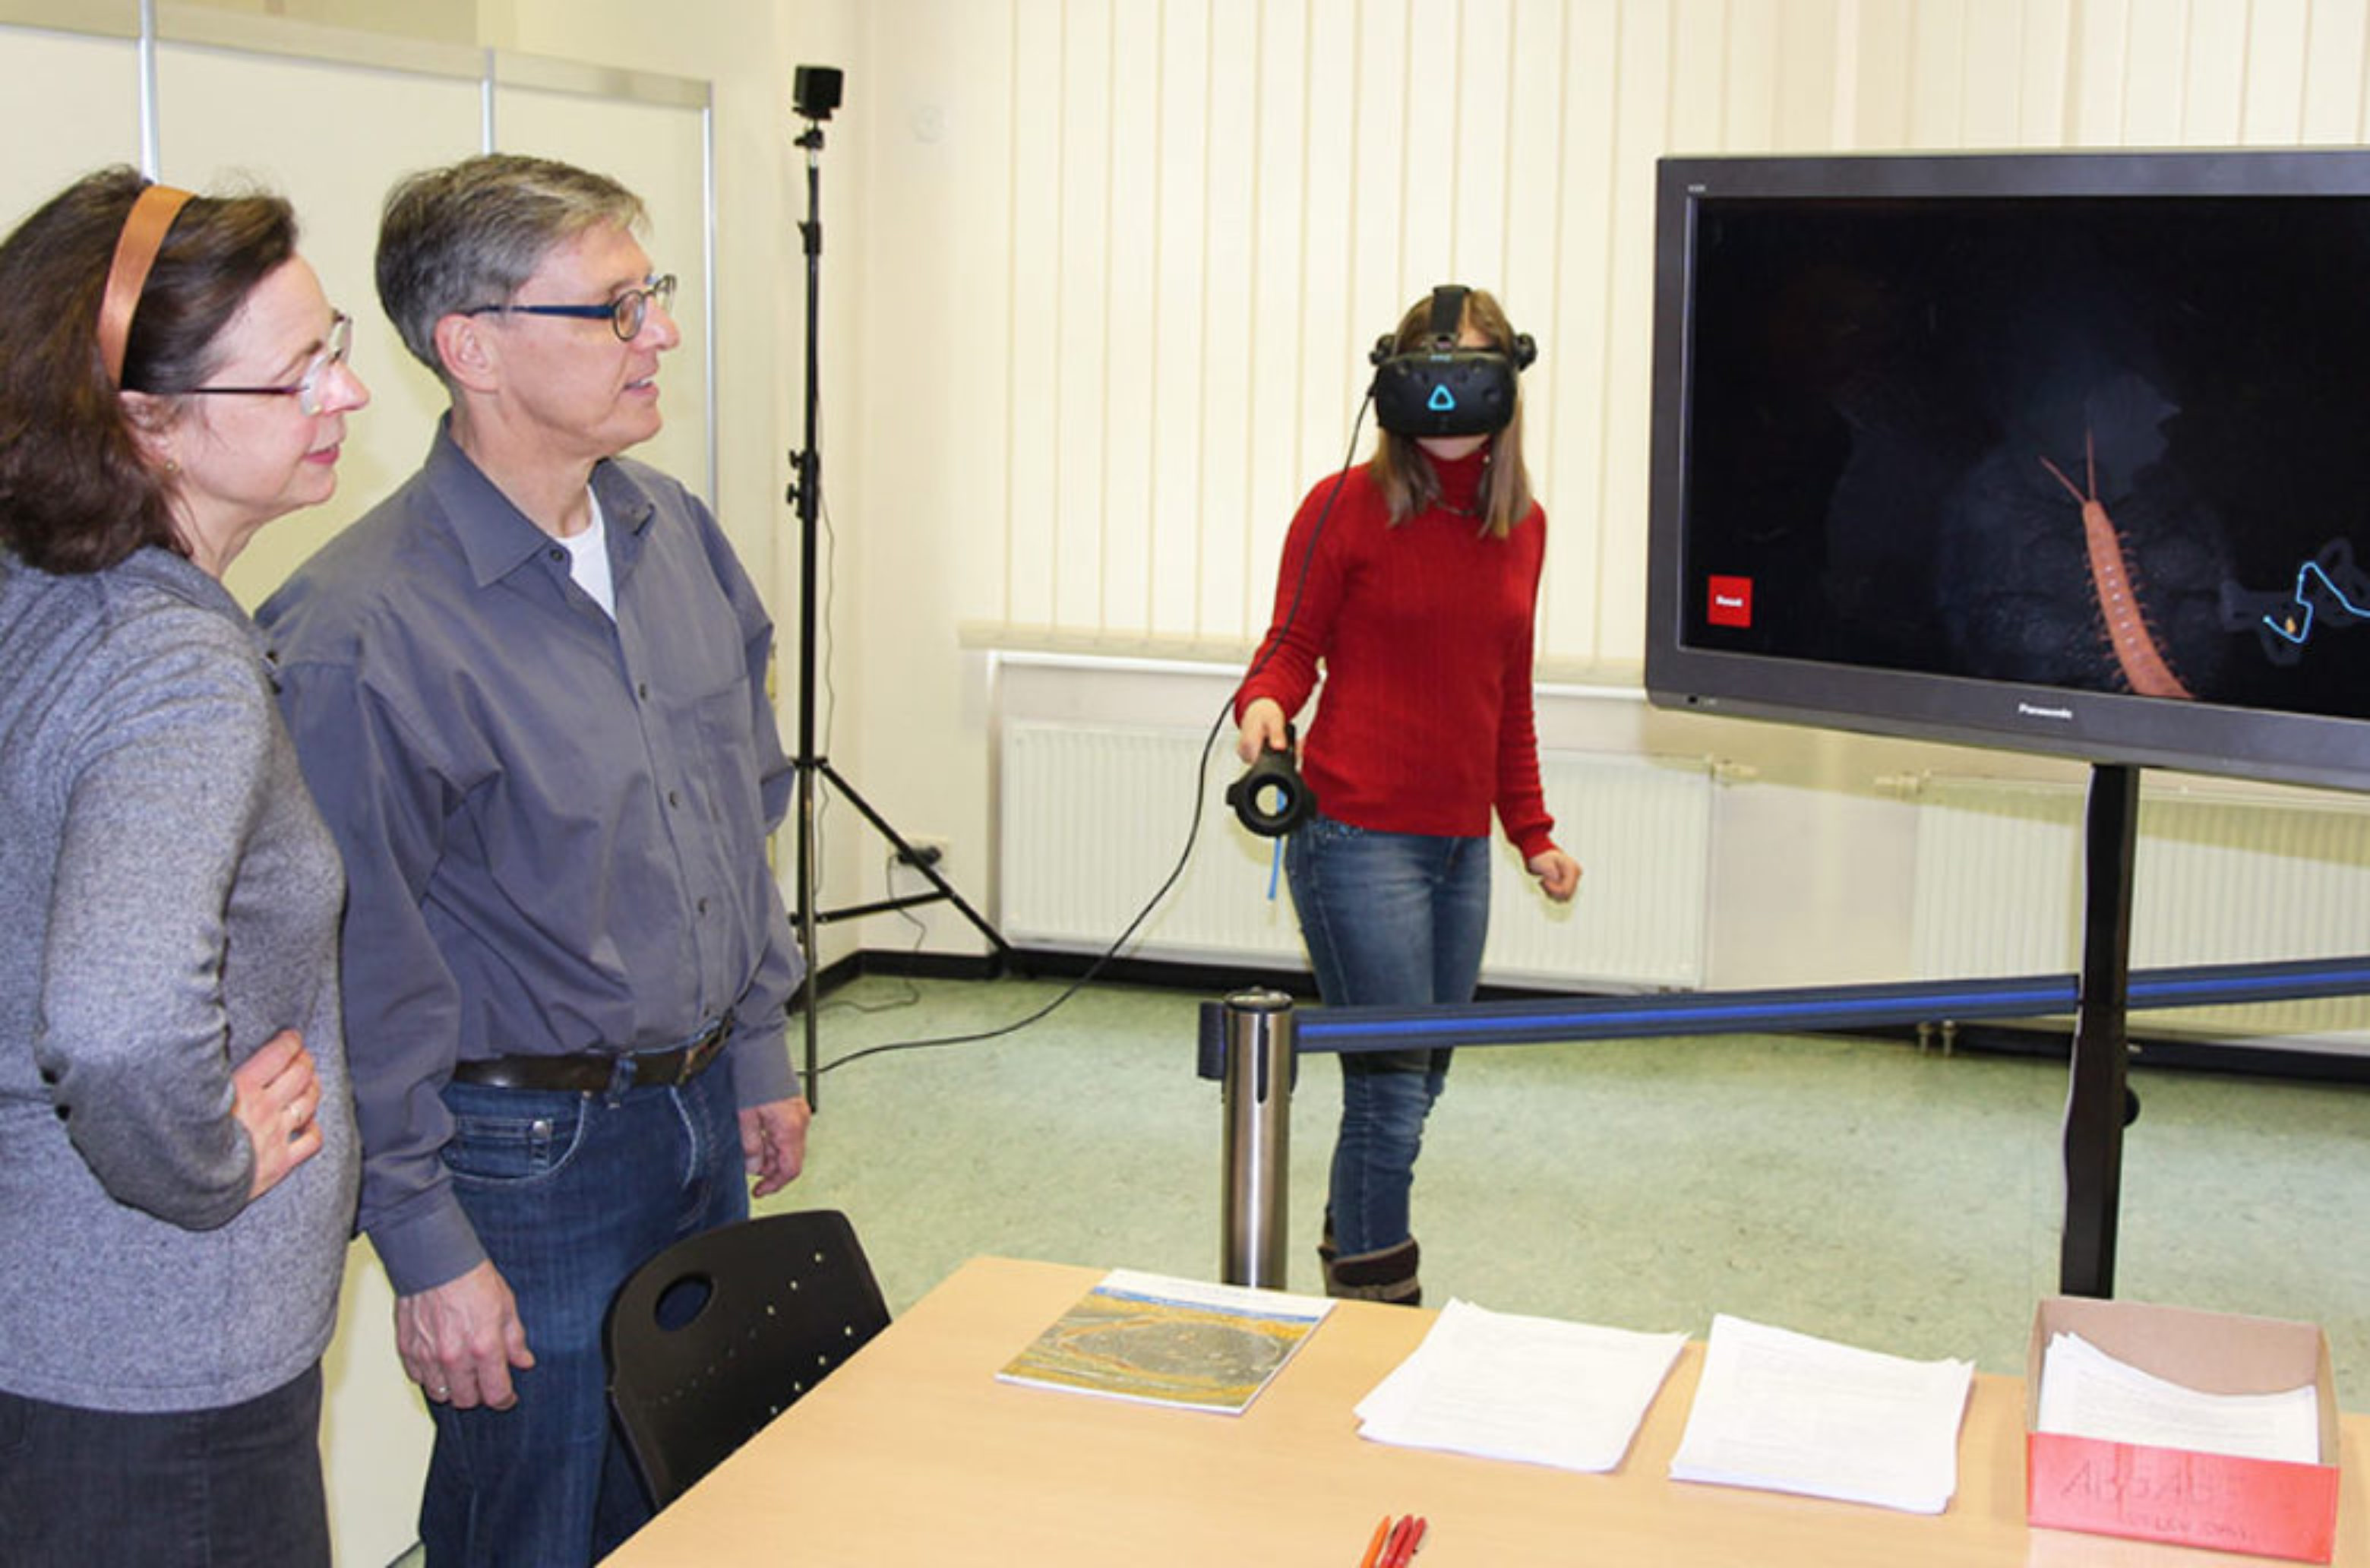 On a screen, visitors can observe what the wearer of the VR goggles is currently experiencing.